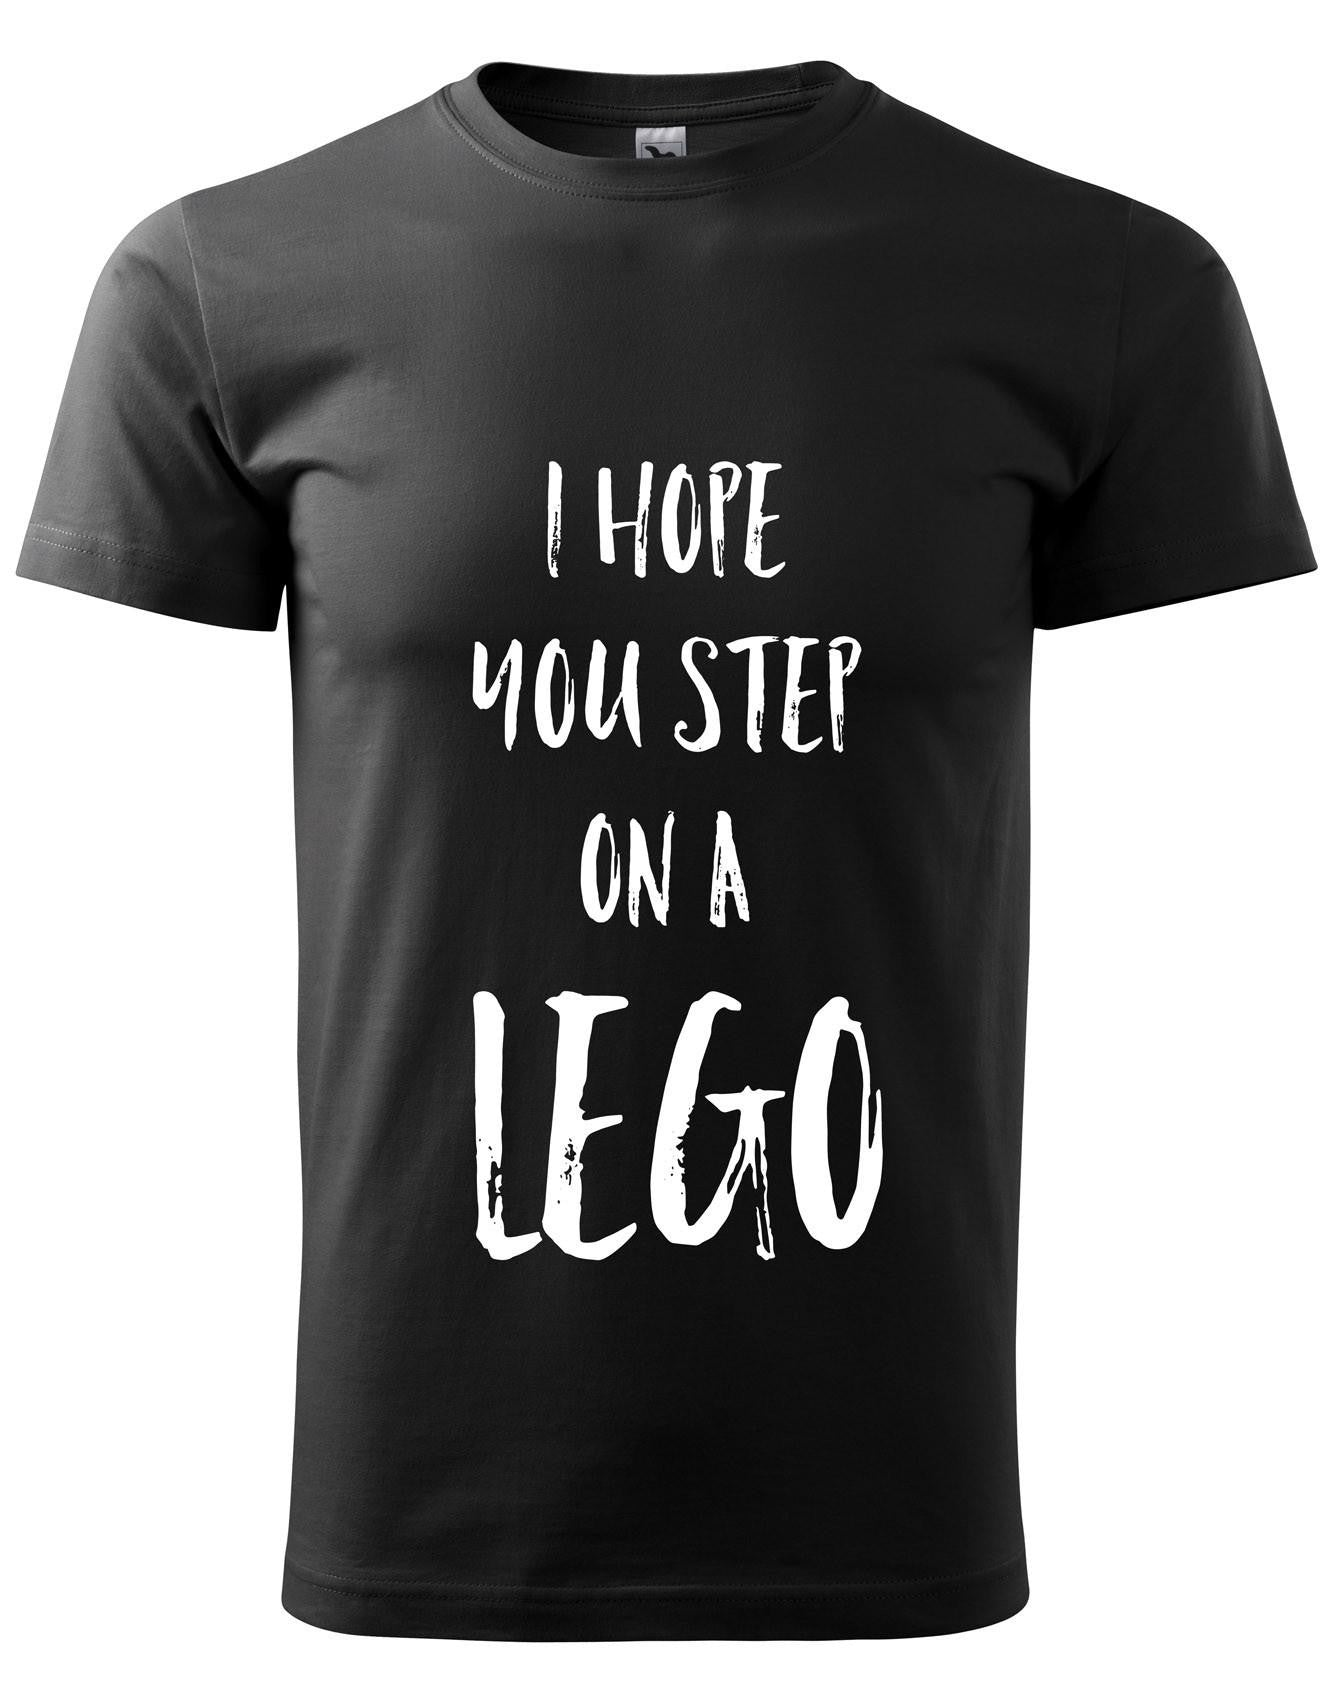 I HOPE YOU STEP ON A LEGO férfi póló